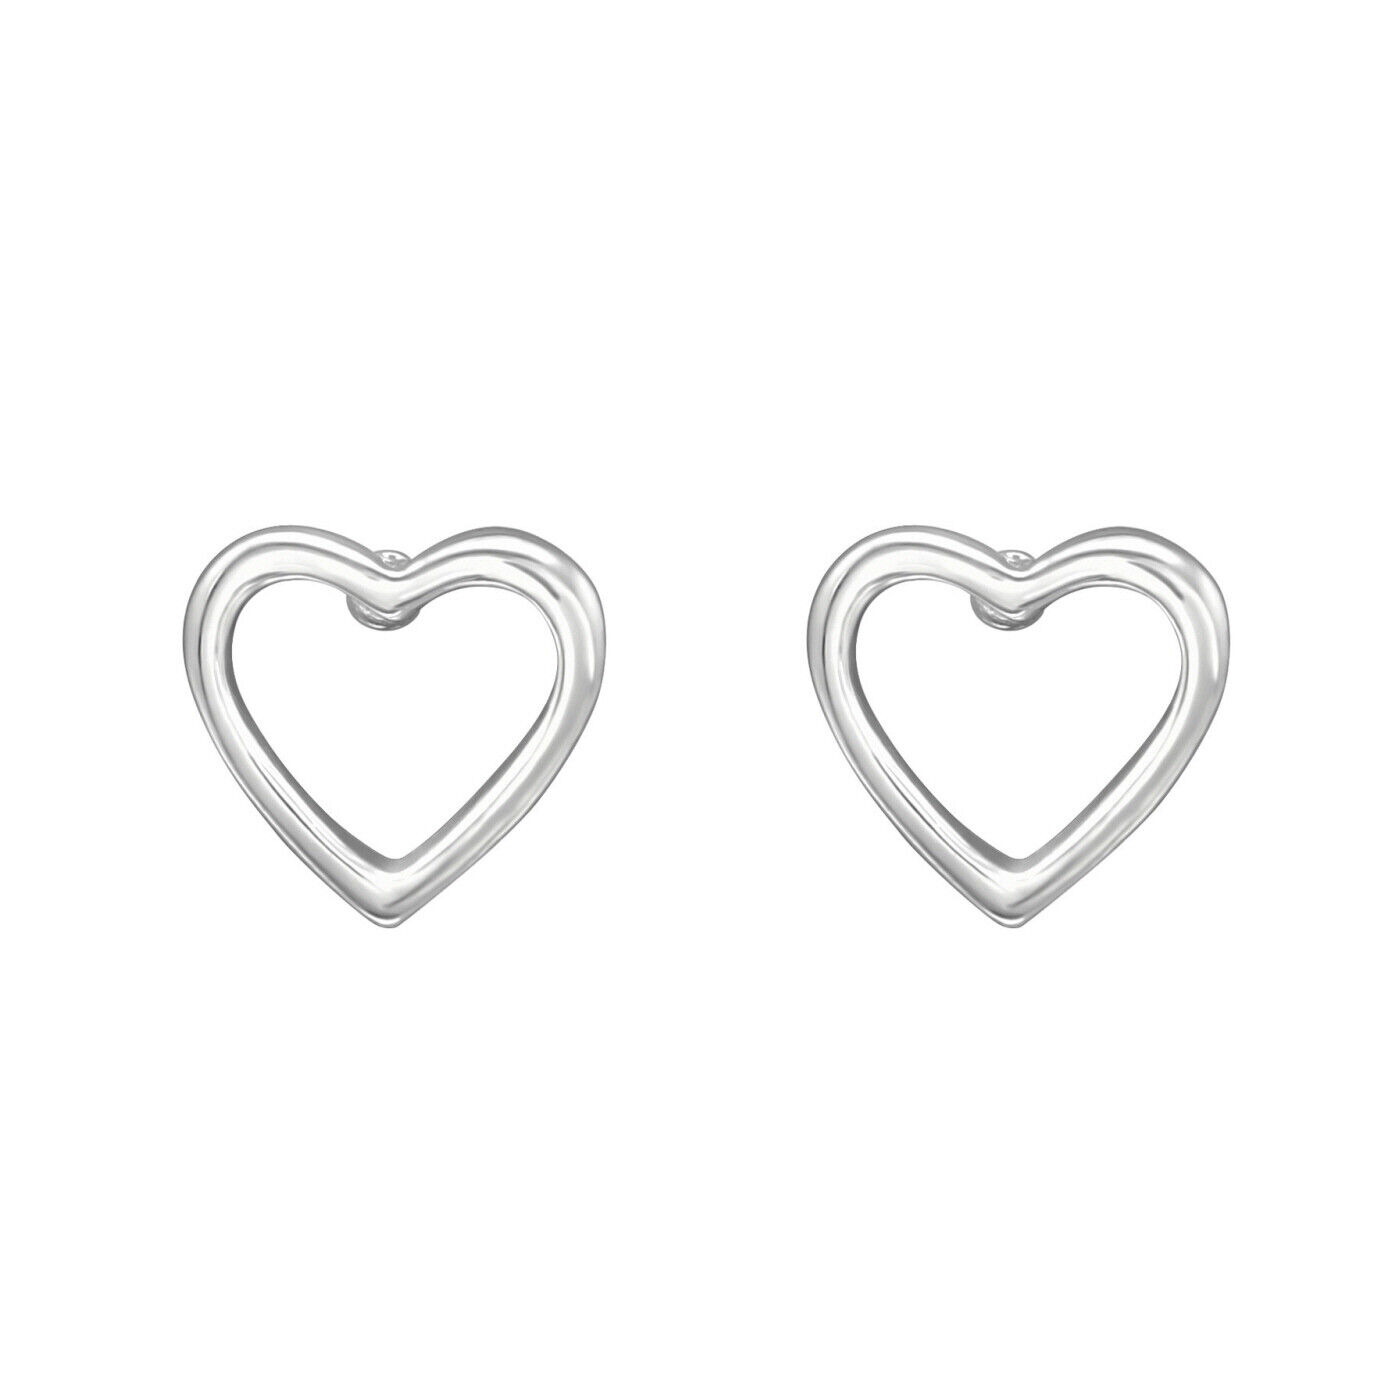 Details about  /Cutout Dotted Star Stud 925 Sterling Silver Push Back Earrings